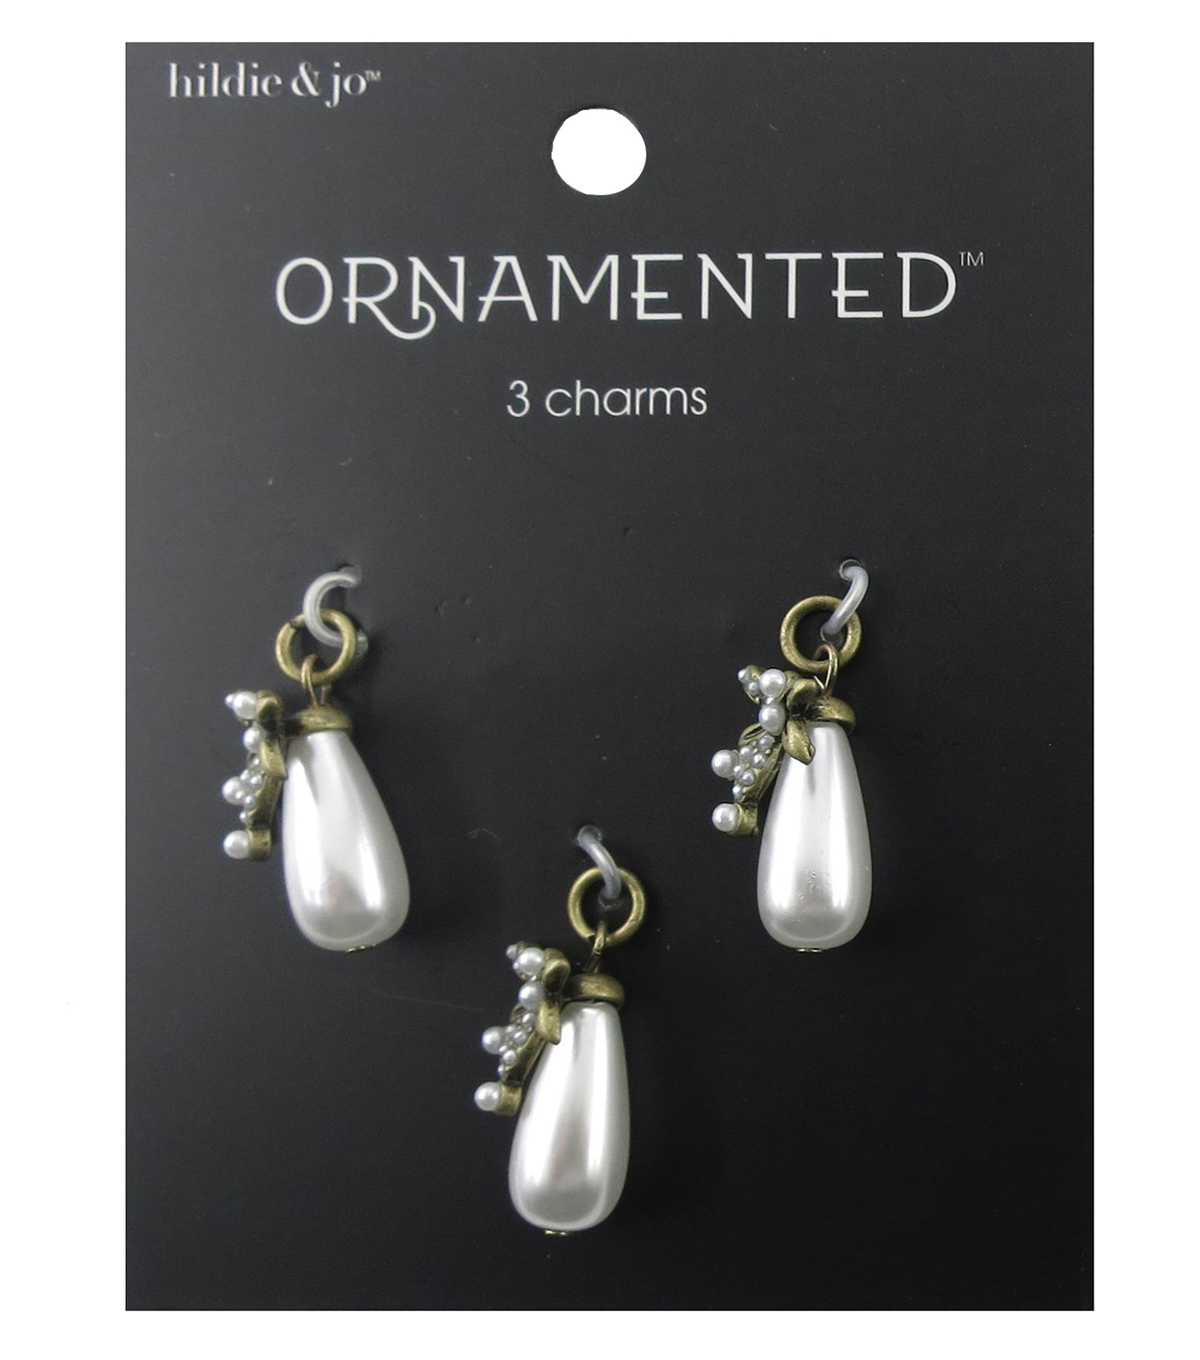 hildie & jo Ornamented 3 Pack Antique Gold Charms-Teardrop Pearl